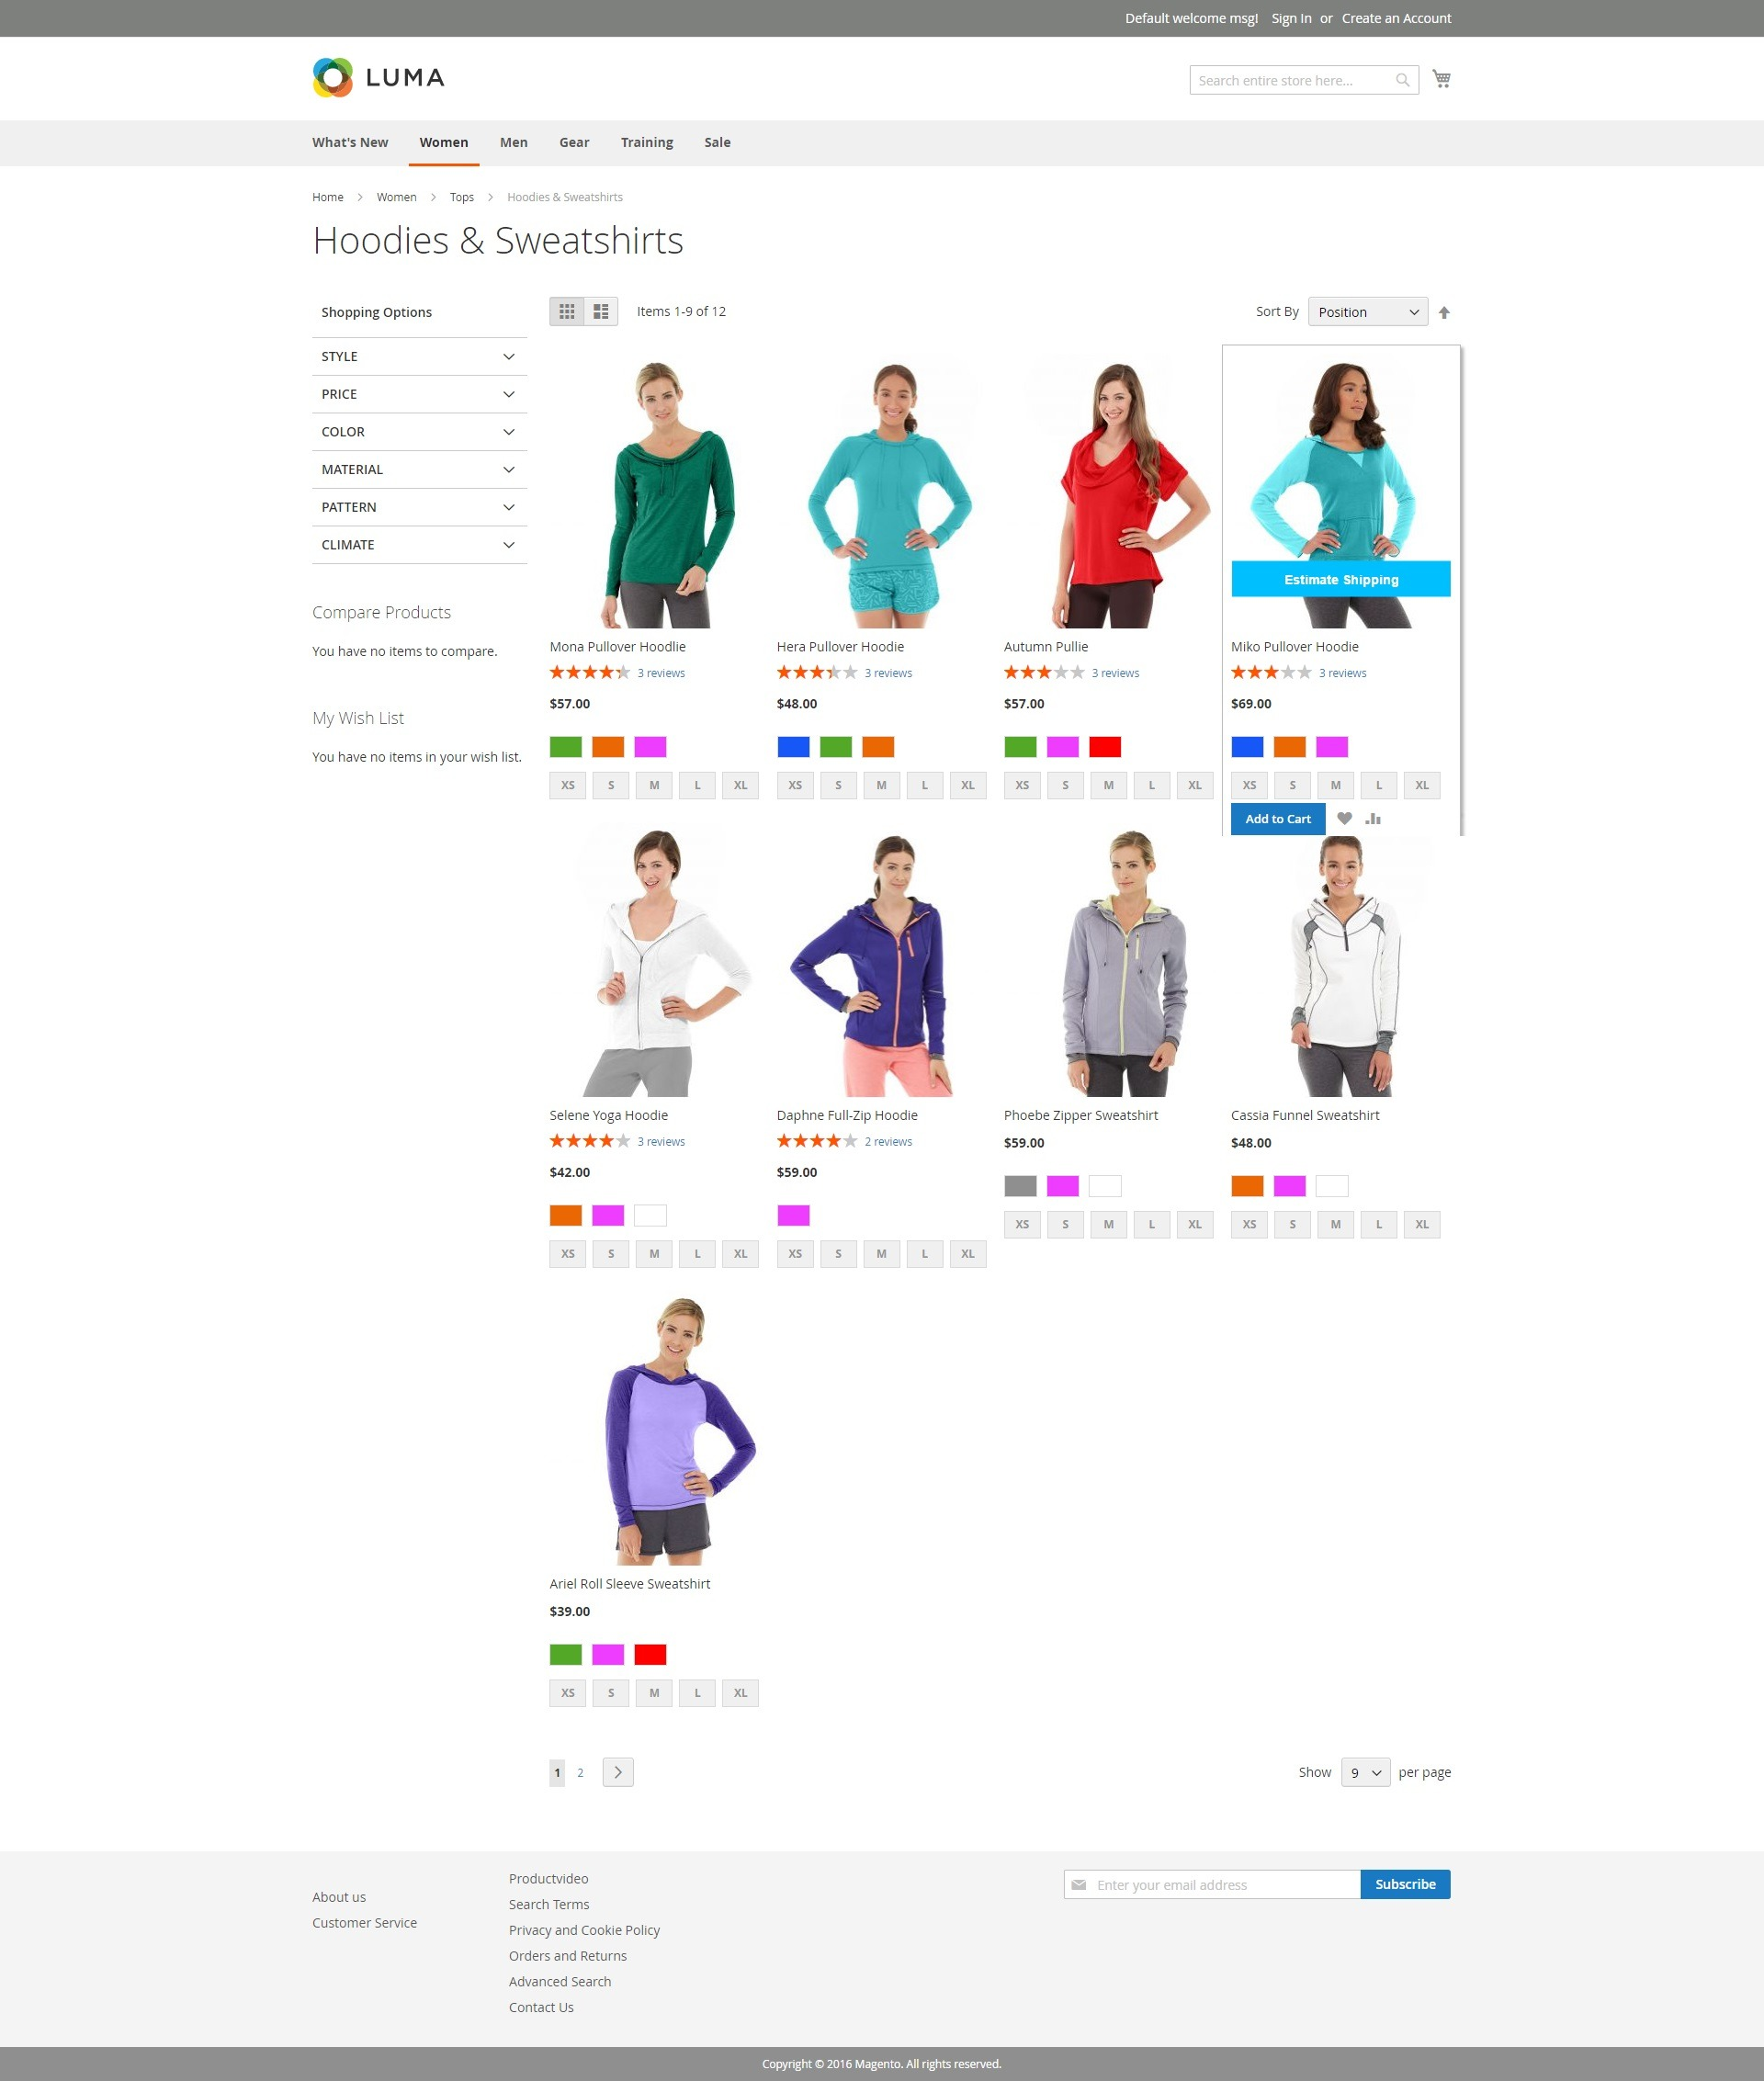 DEMO IN CATEGORY PAGE